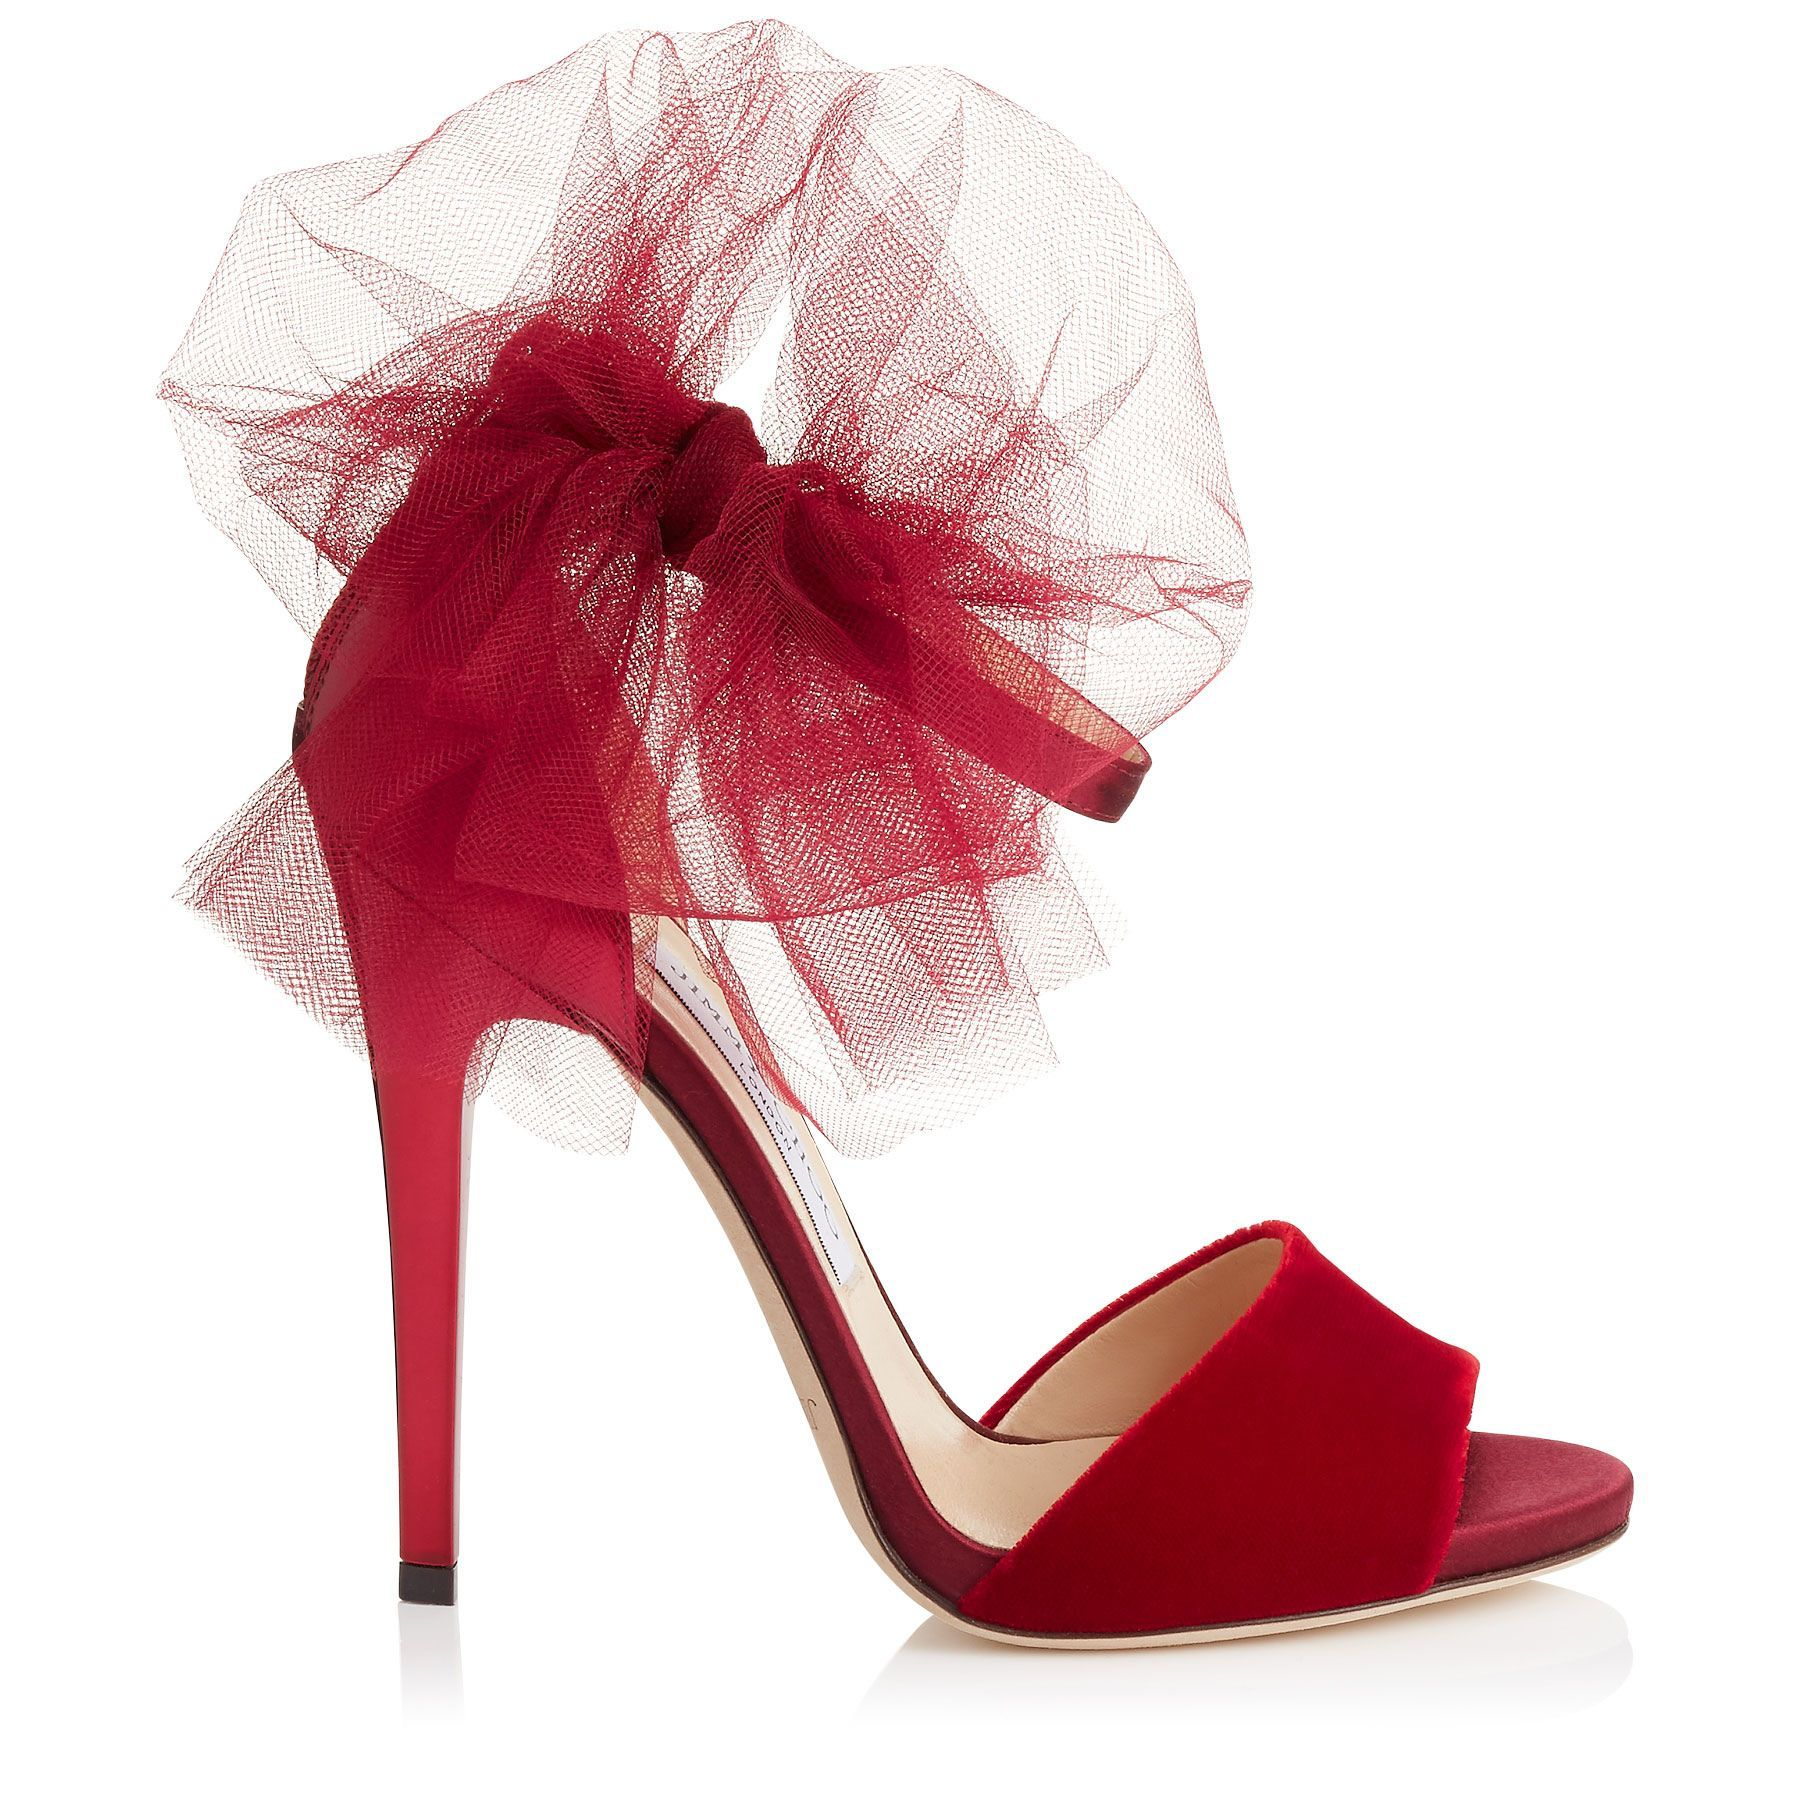 Red Velvet, Satin And Mirror Leather Peep Toe Sandals With Tulle Bow Detail  | Lilyth